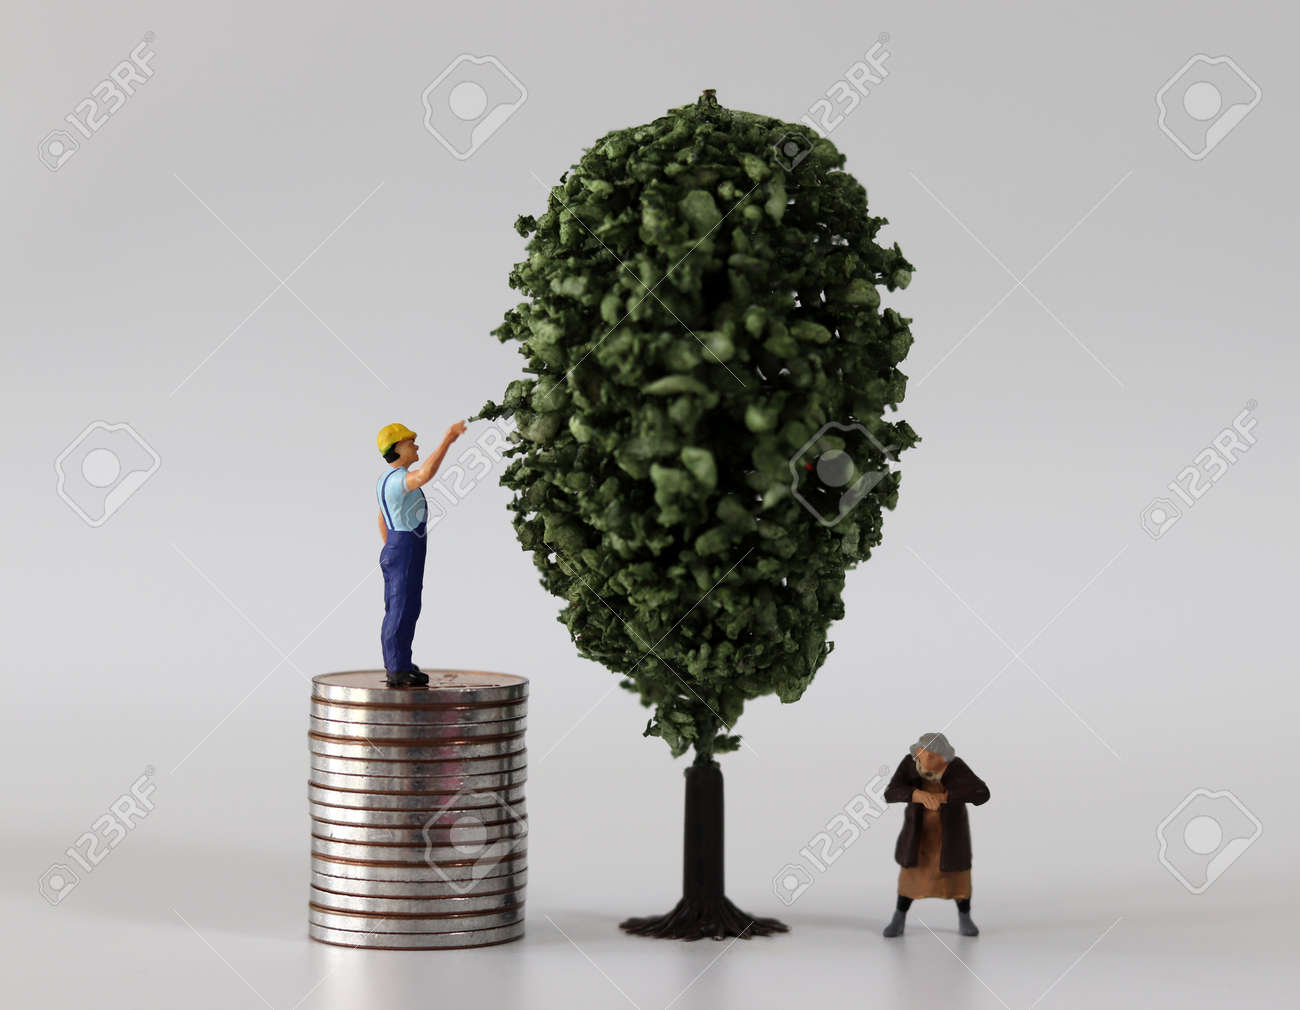 A miniature man and a miniature woman on a pile of coins next to a miniature tree. The concept of economic inequality. - 169818822